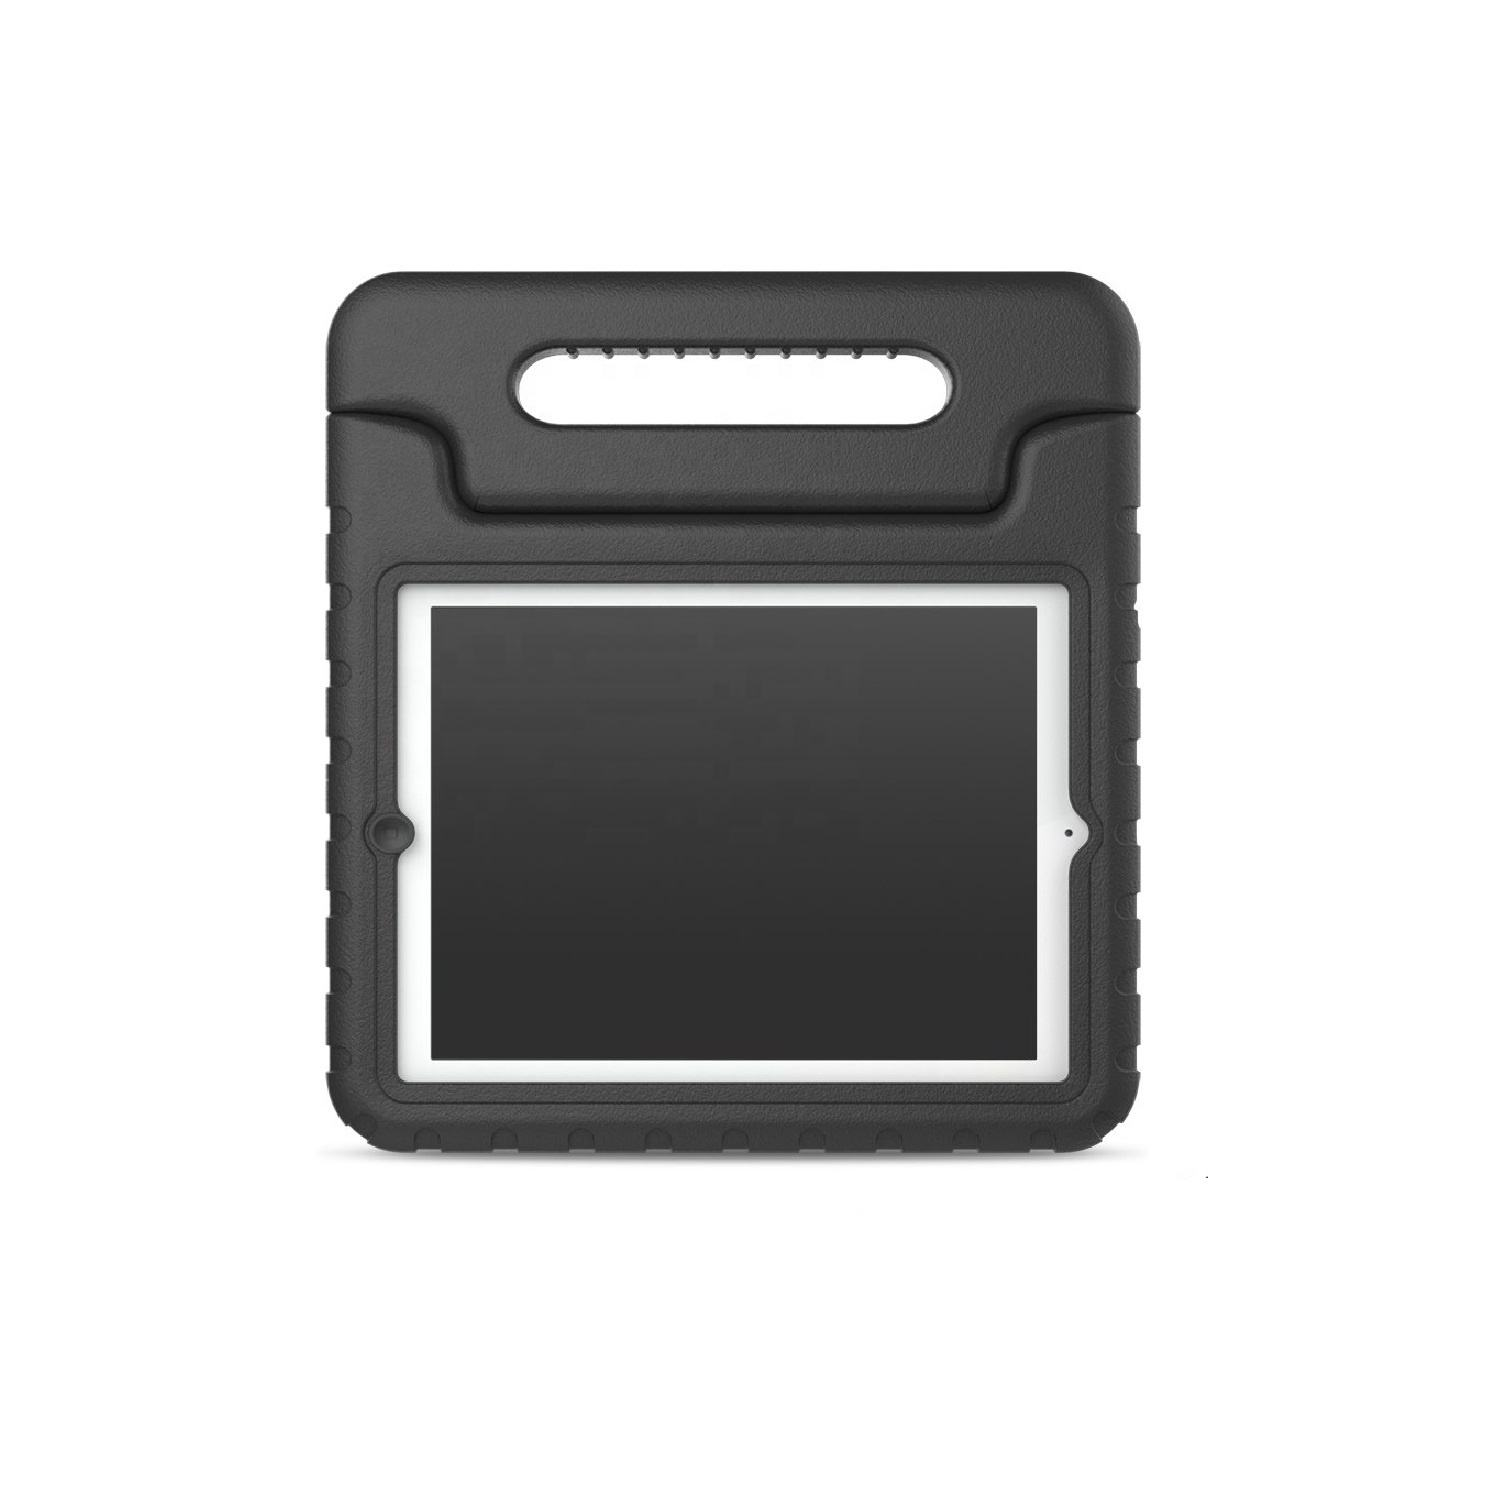 MoKo Robuste Robuste kid-friendly boîtier antichoc pour apple ipad 2/3/4 9.7 pouces tablette